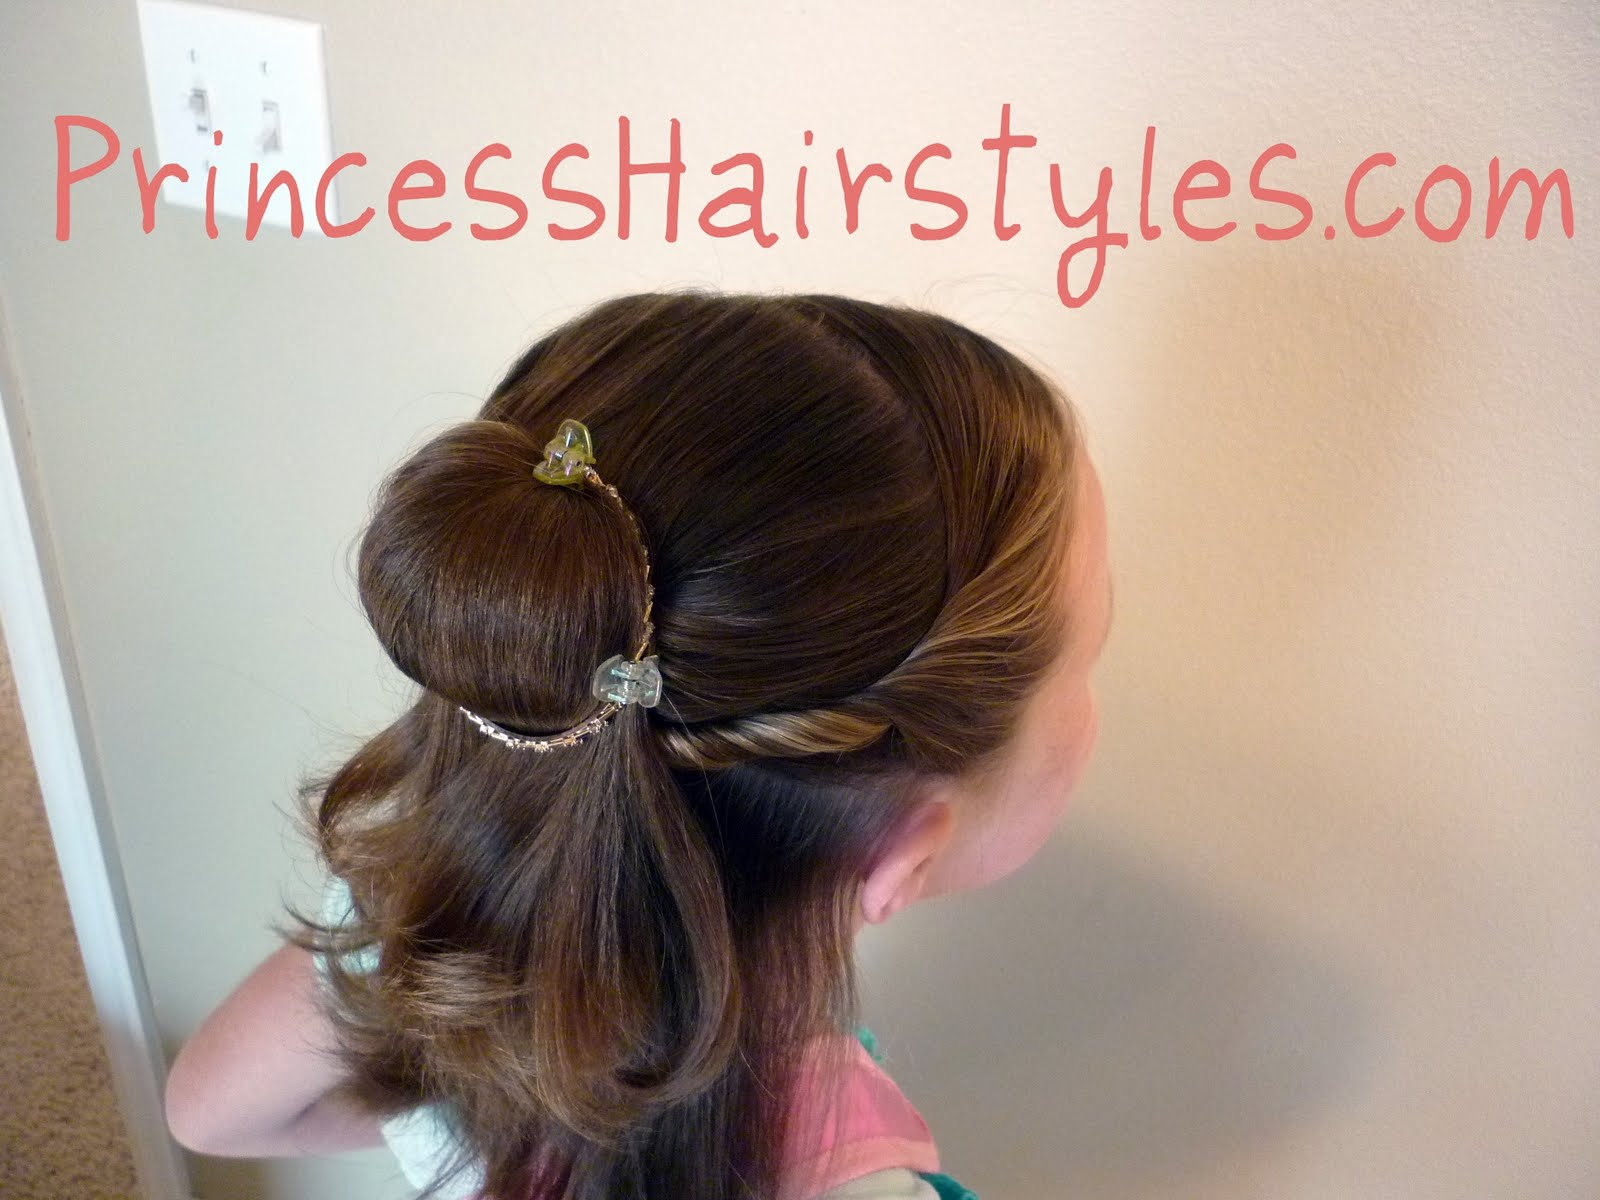 belle hairstyle - for short hair | hairstyles for girls